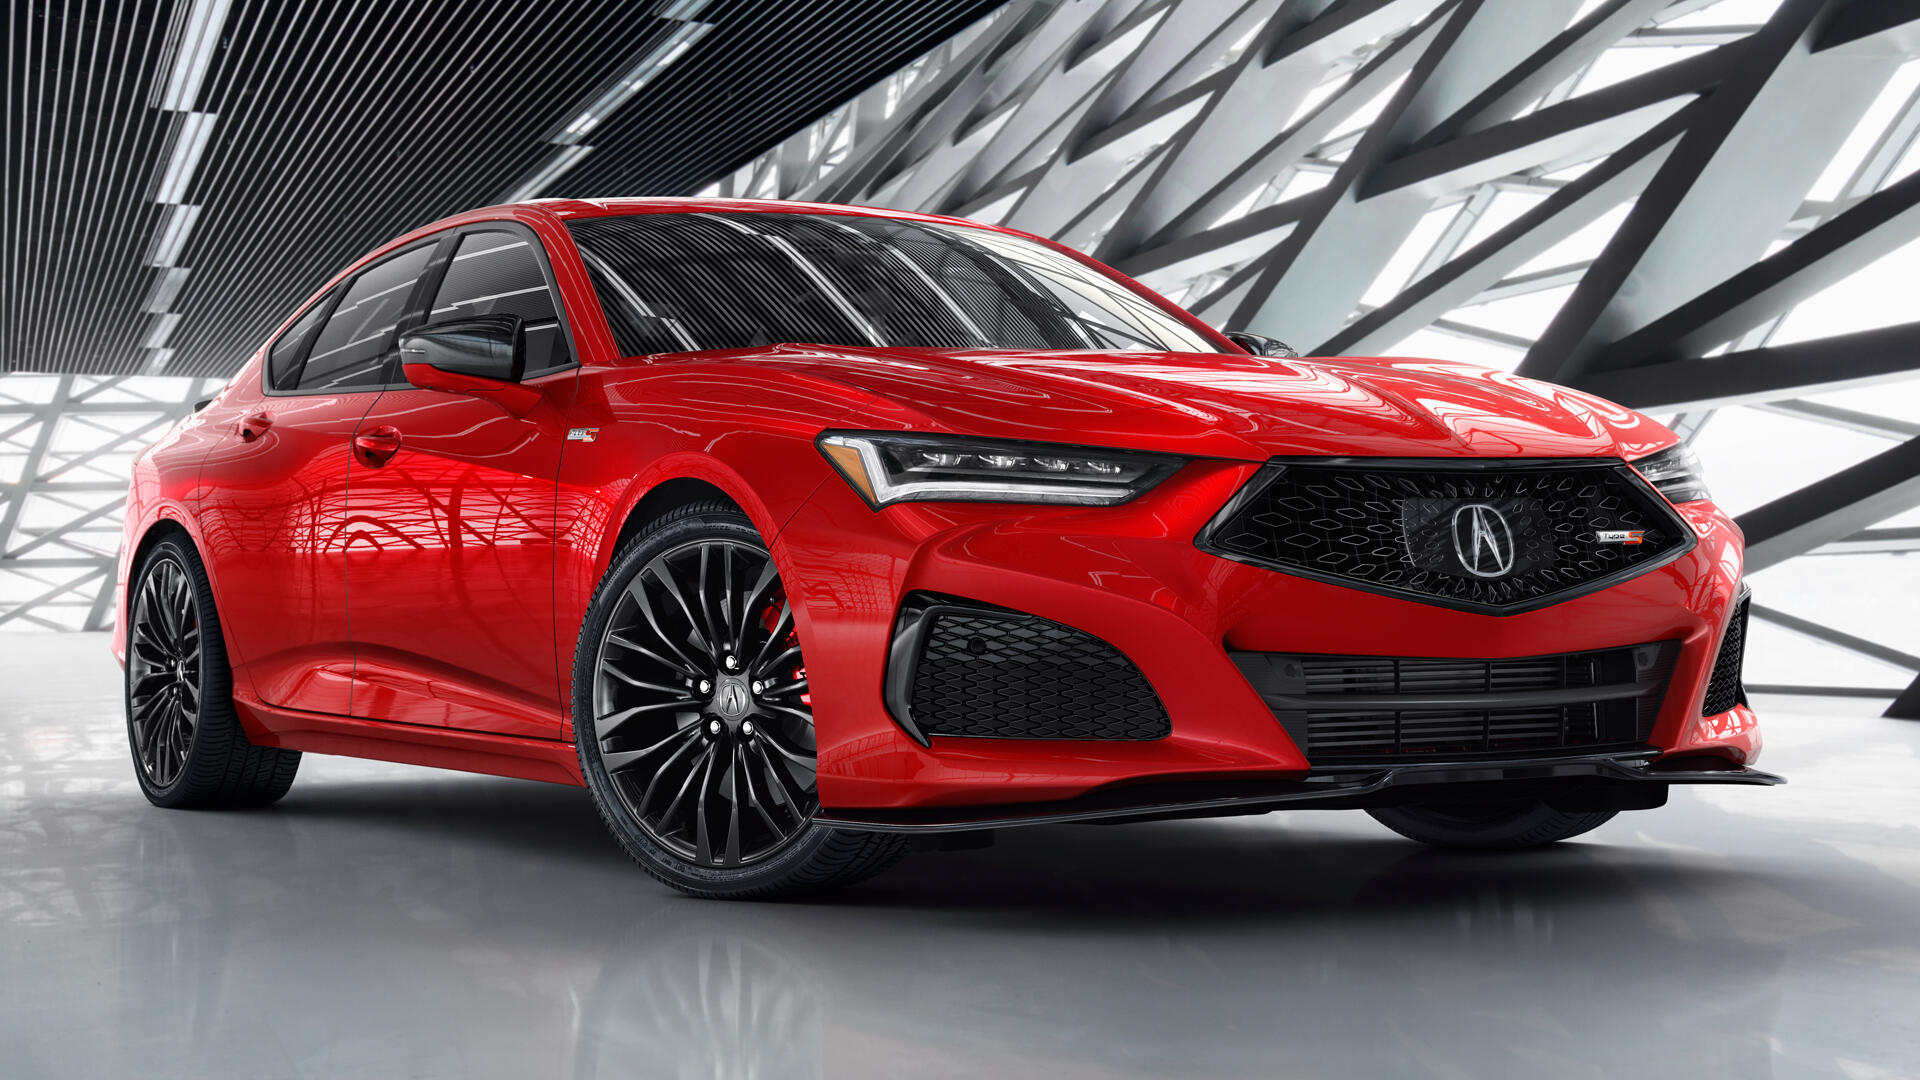 Video: Acura is back and the 2021 TLX is proof